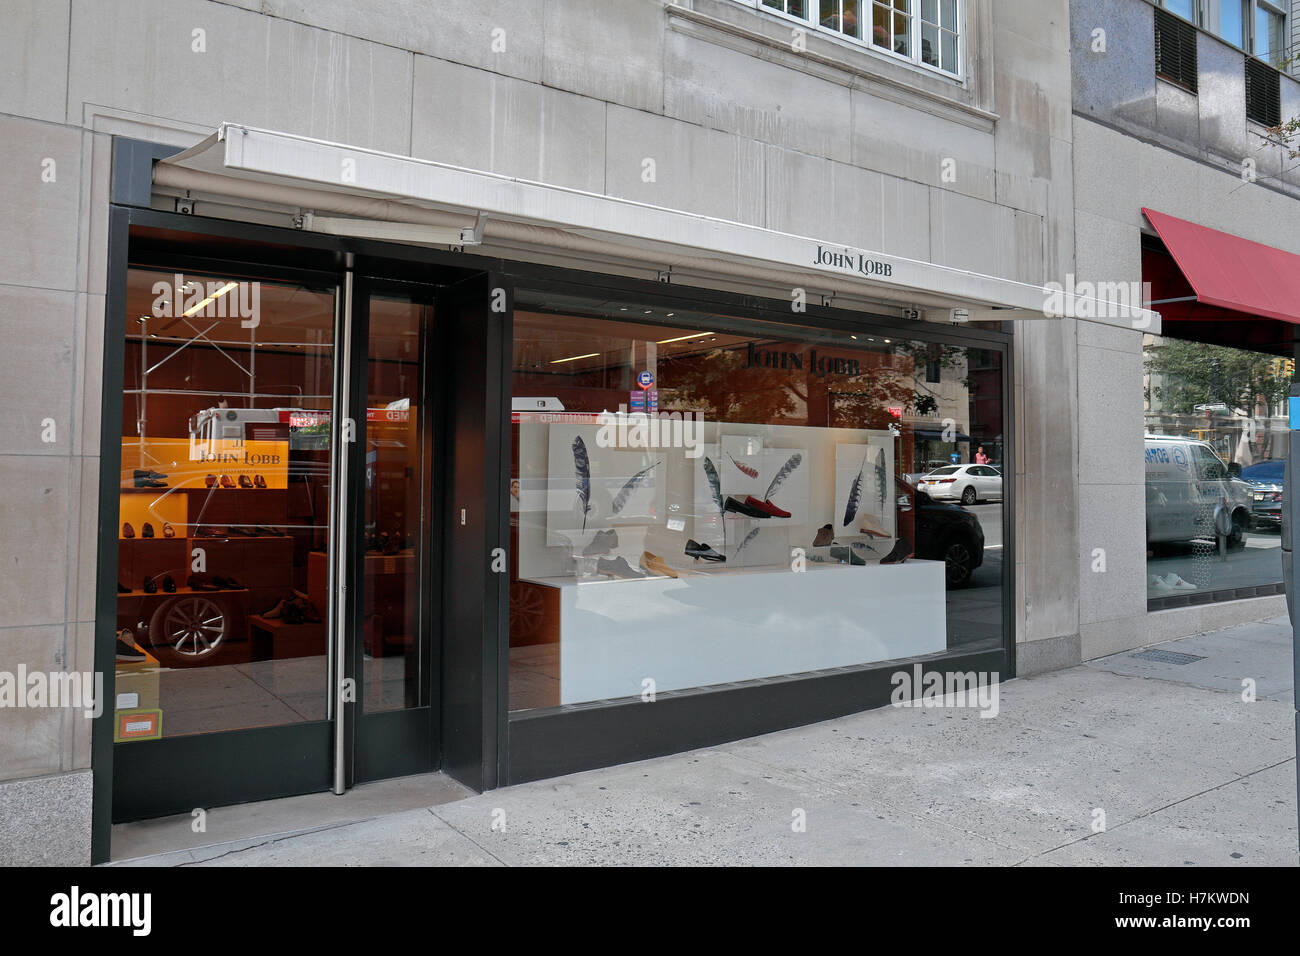 John Lobb Shoes >> The John Lobb designer shoe store in Manhattan, New York City, United Stock Photo: 125212241 - Alamy